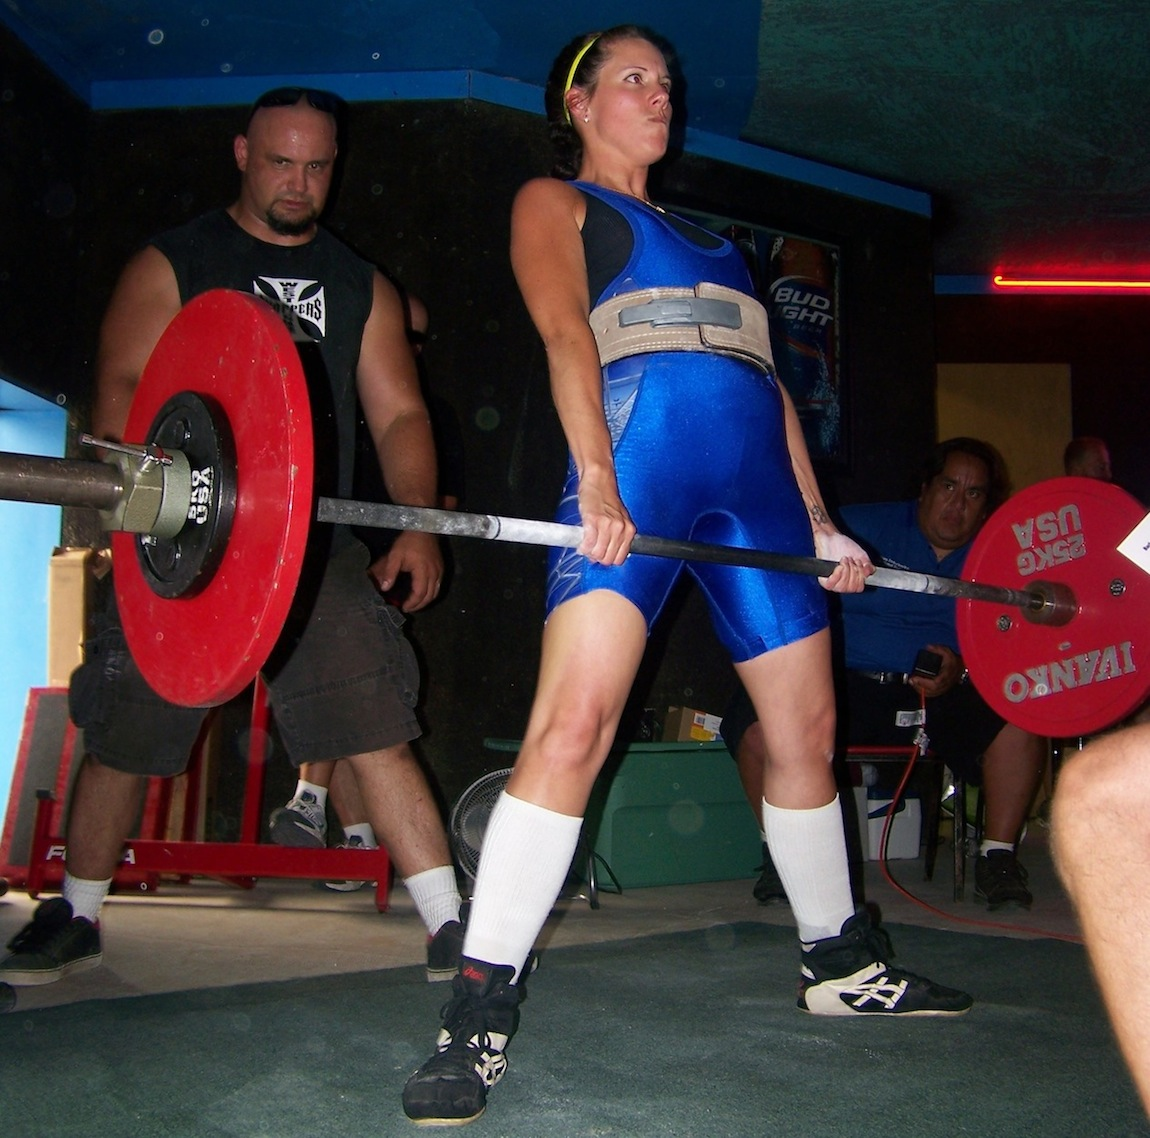 Stacey Zahno competes in a recent lifting competition.